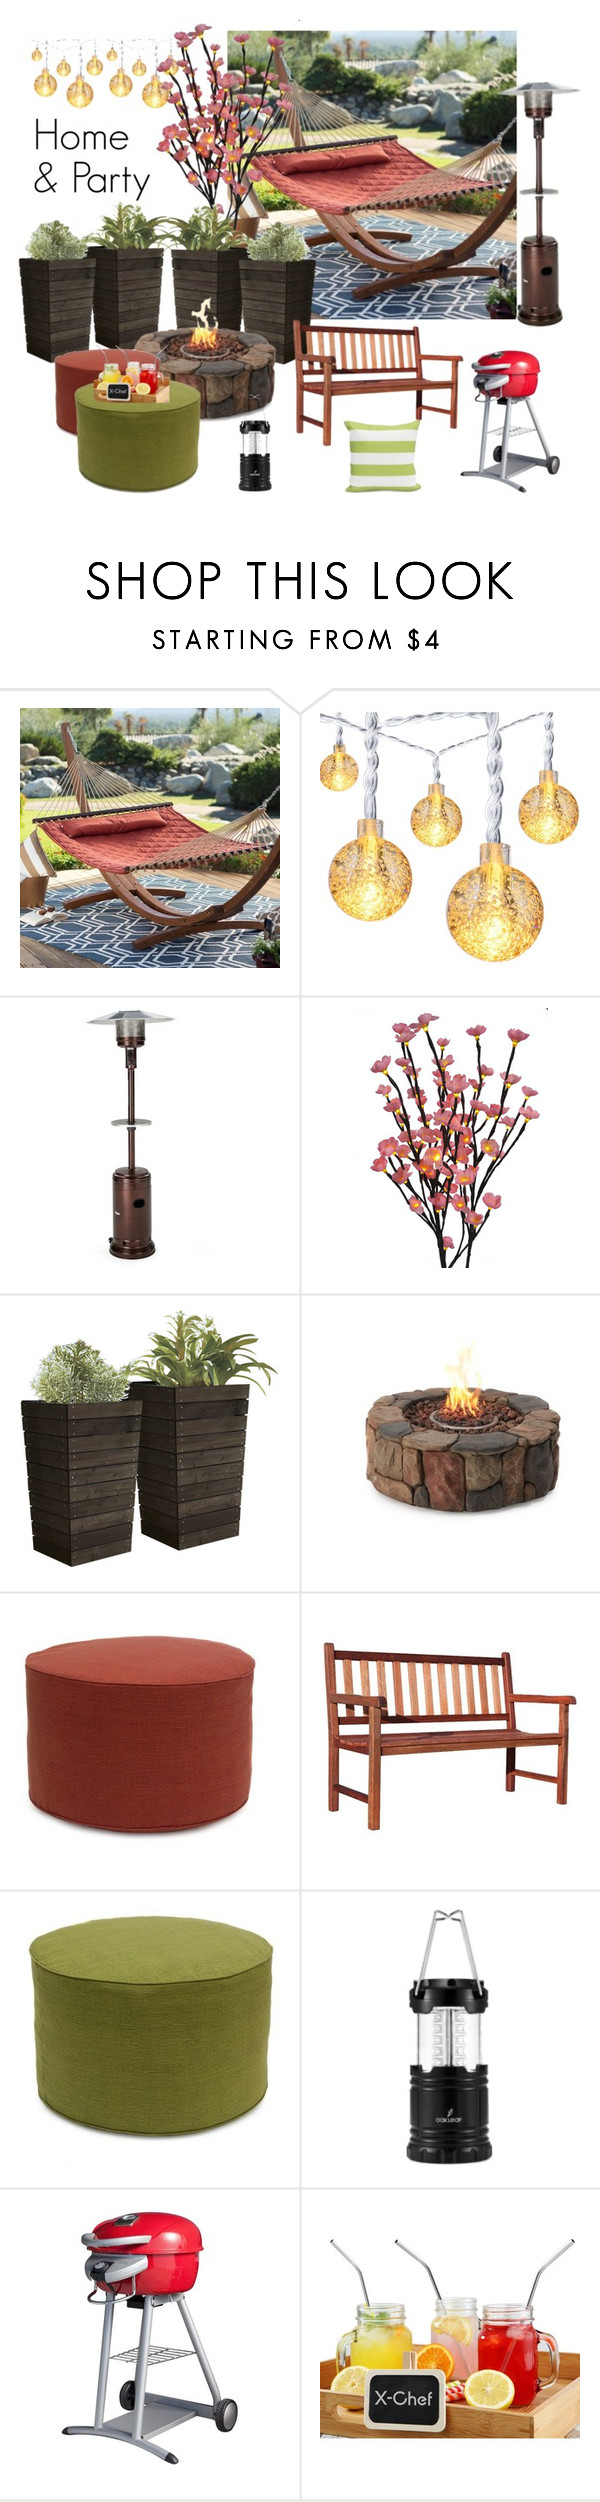 Interior design home parties - Home Party By Ioakleaf On Polyvore Featuring Interior Interiors Interior Design Home